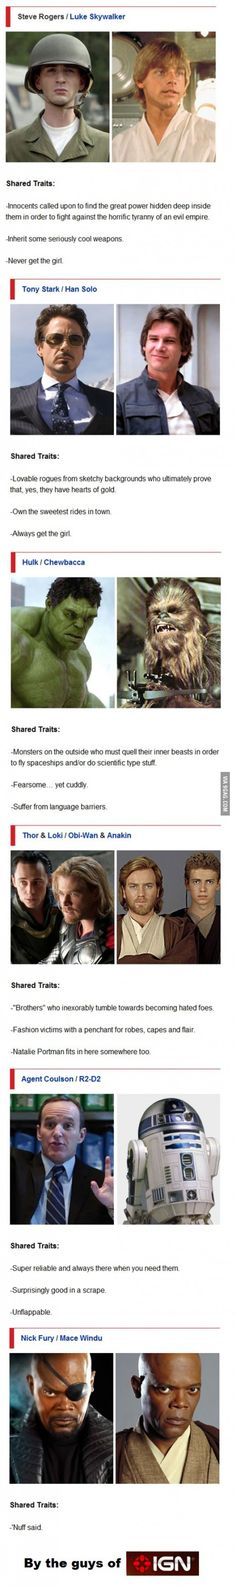 Compare the Avengers with Star Wars.